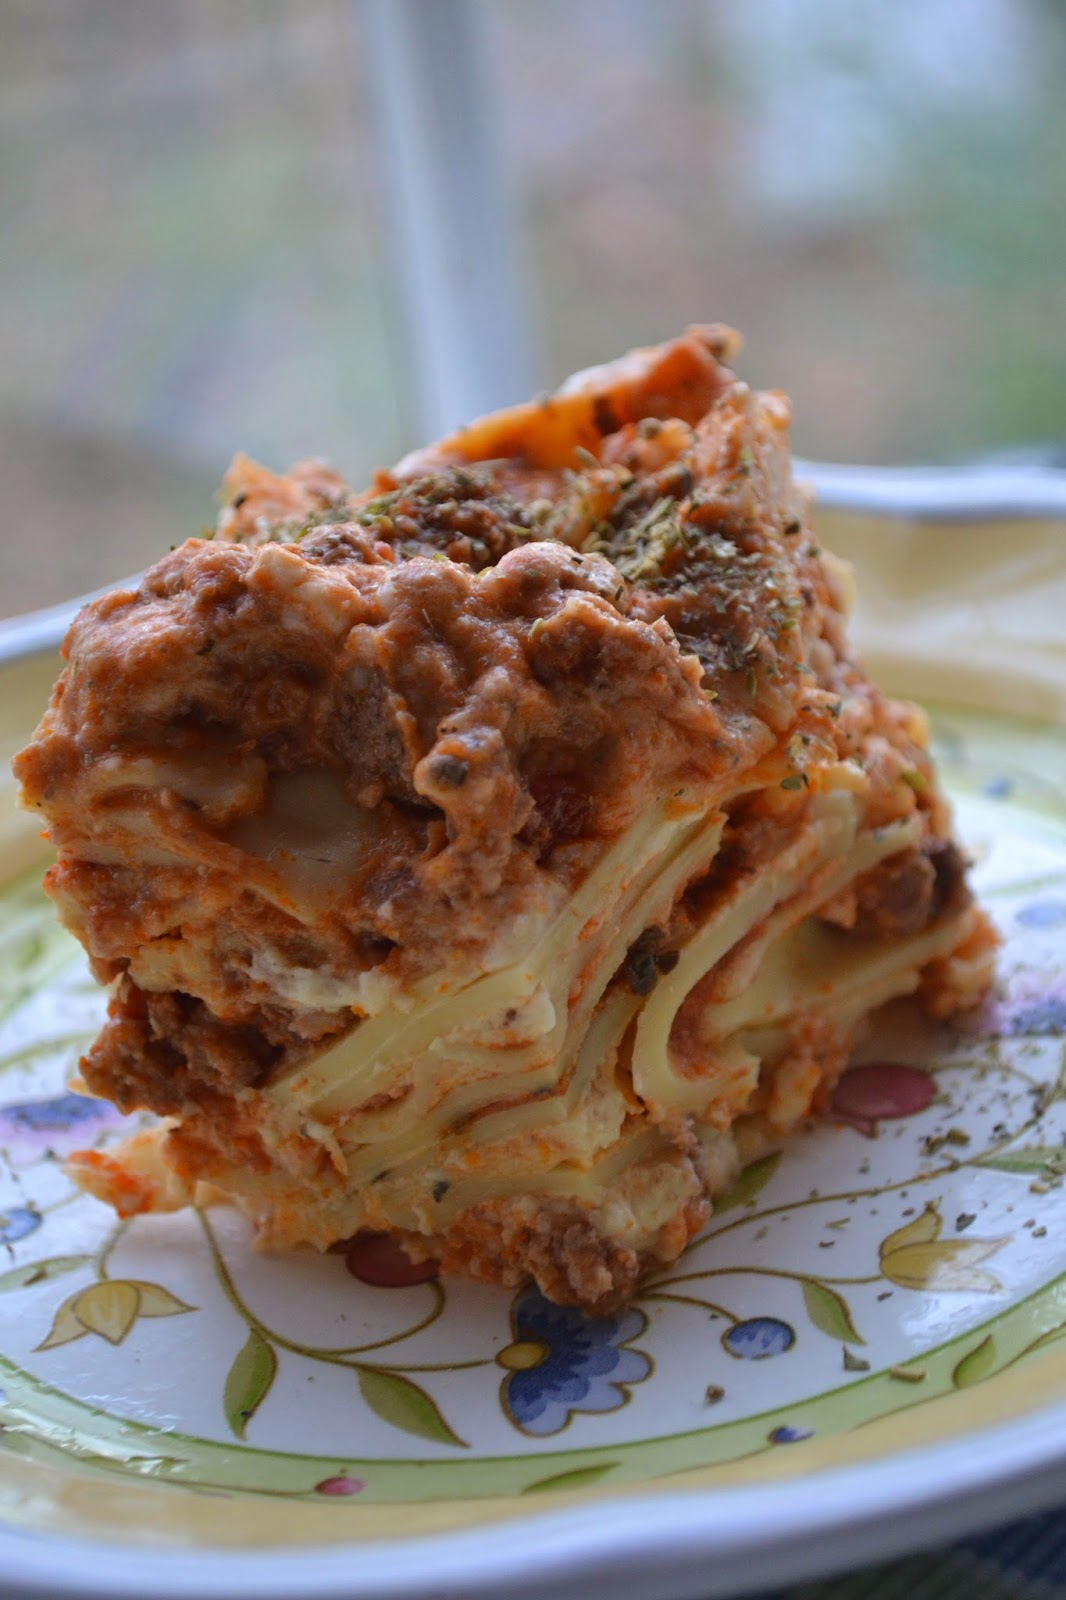 Barilla Oven Ready Lasagna With Meat Sauce And Bechamel